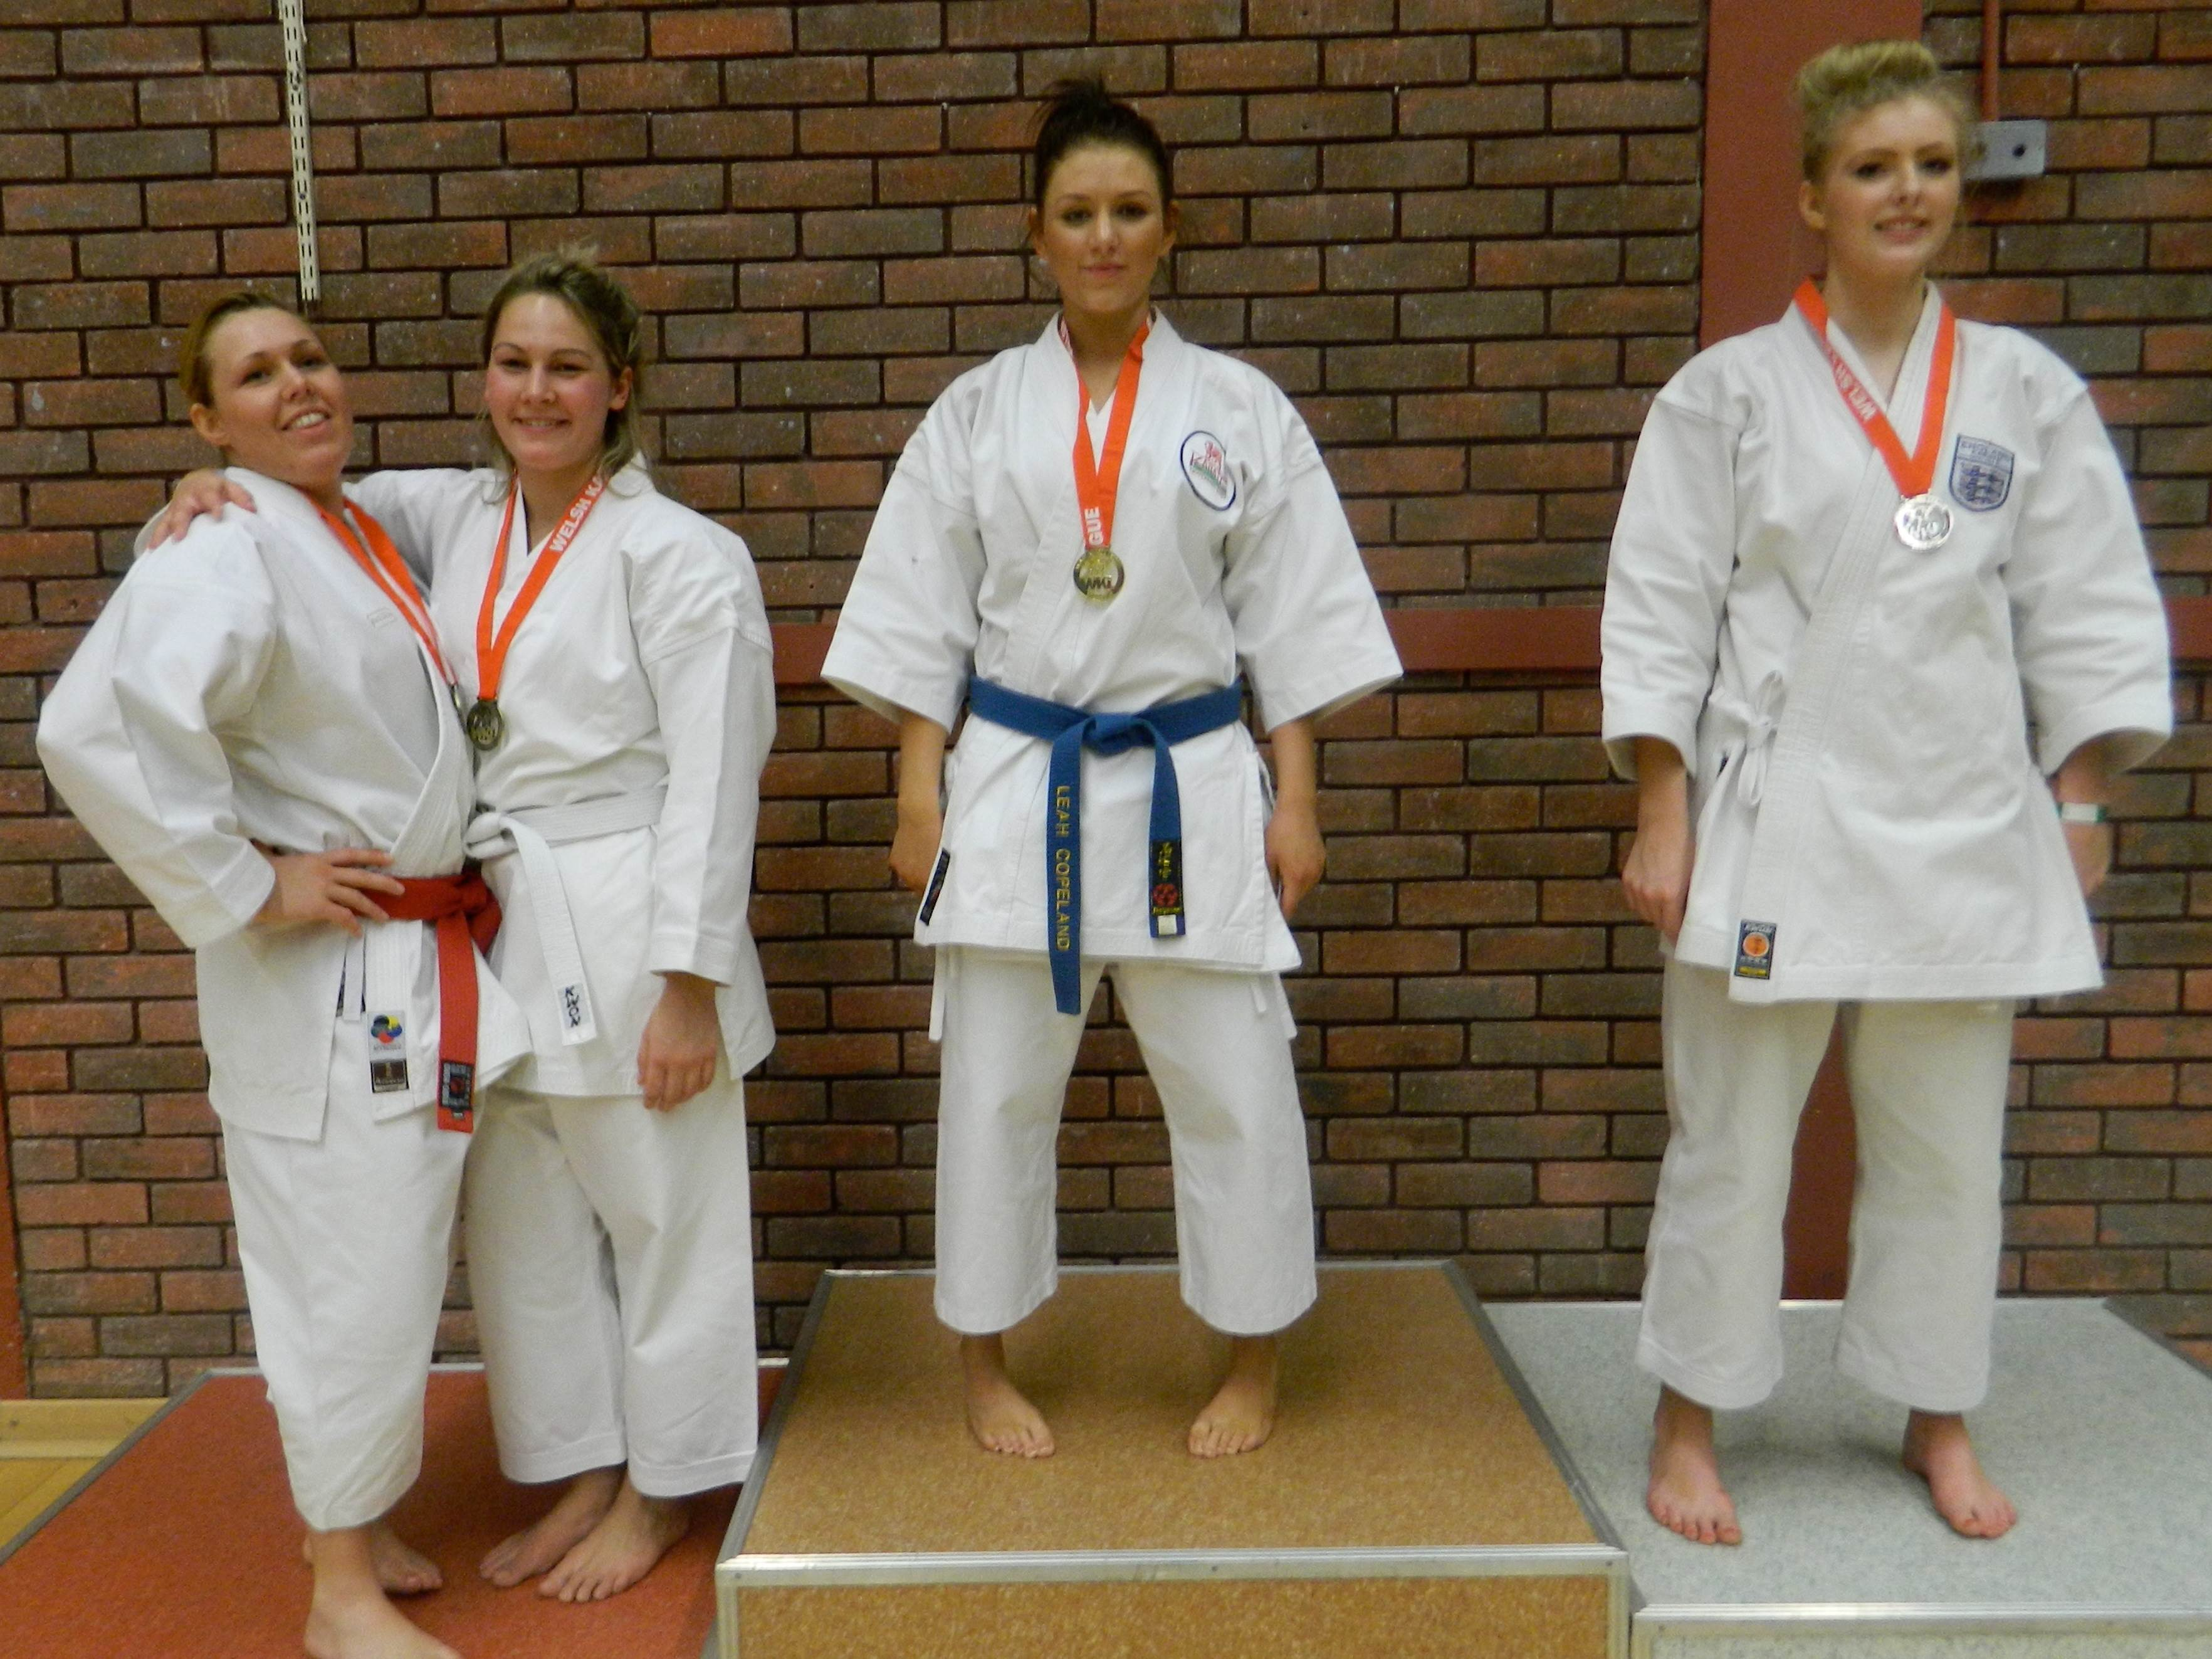 Leah Copeland wins Ladies Kata sharing the podium with her English rivals